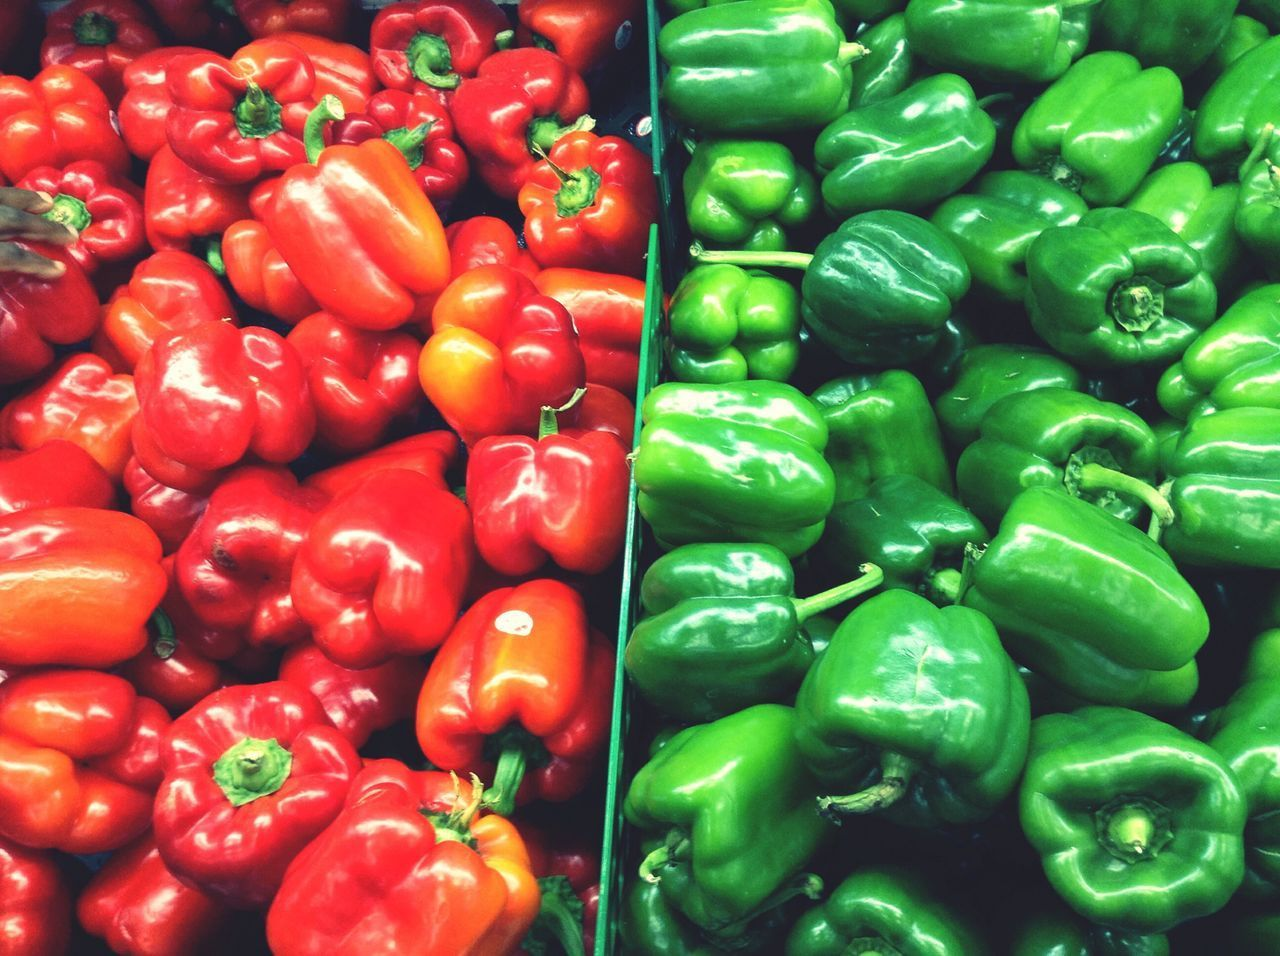 Bells🌶 Freshness Food And Drink Healthy Eating Bell Pepper Food Full Frame Retail  Market Abundance Backgrounds For Sale Red Red Bell Pepper Large Group Of Objects Green Bell Pepper Choice No People Green Color Close-up